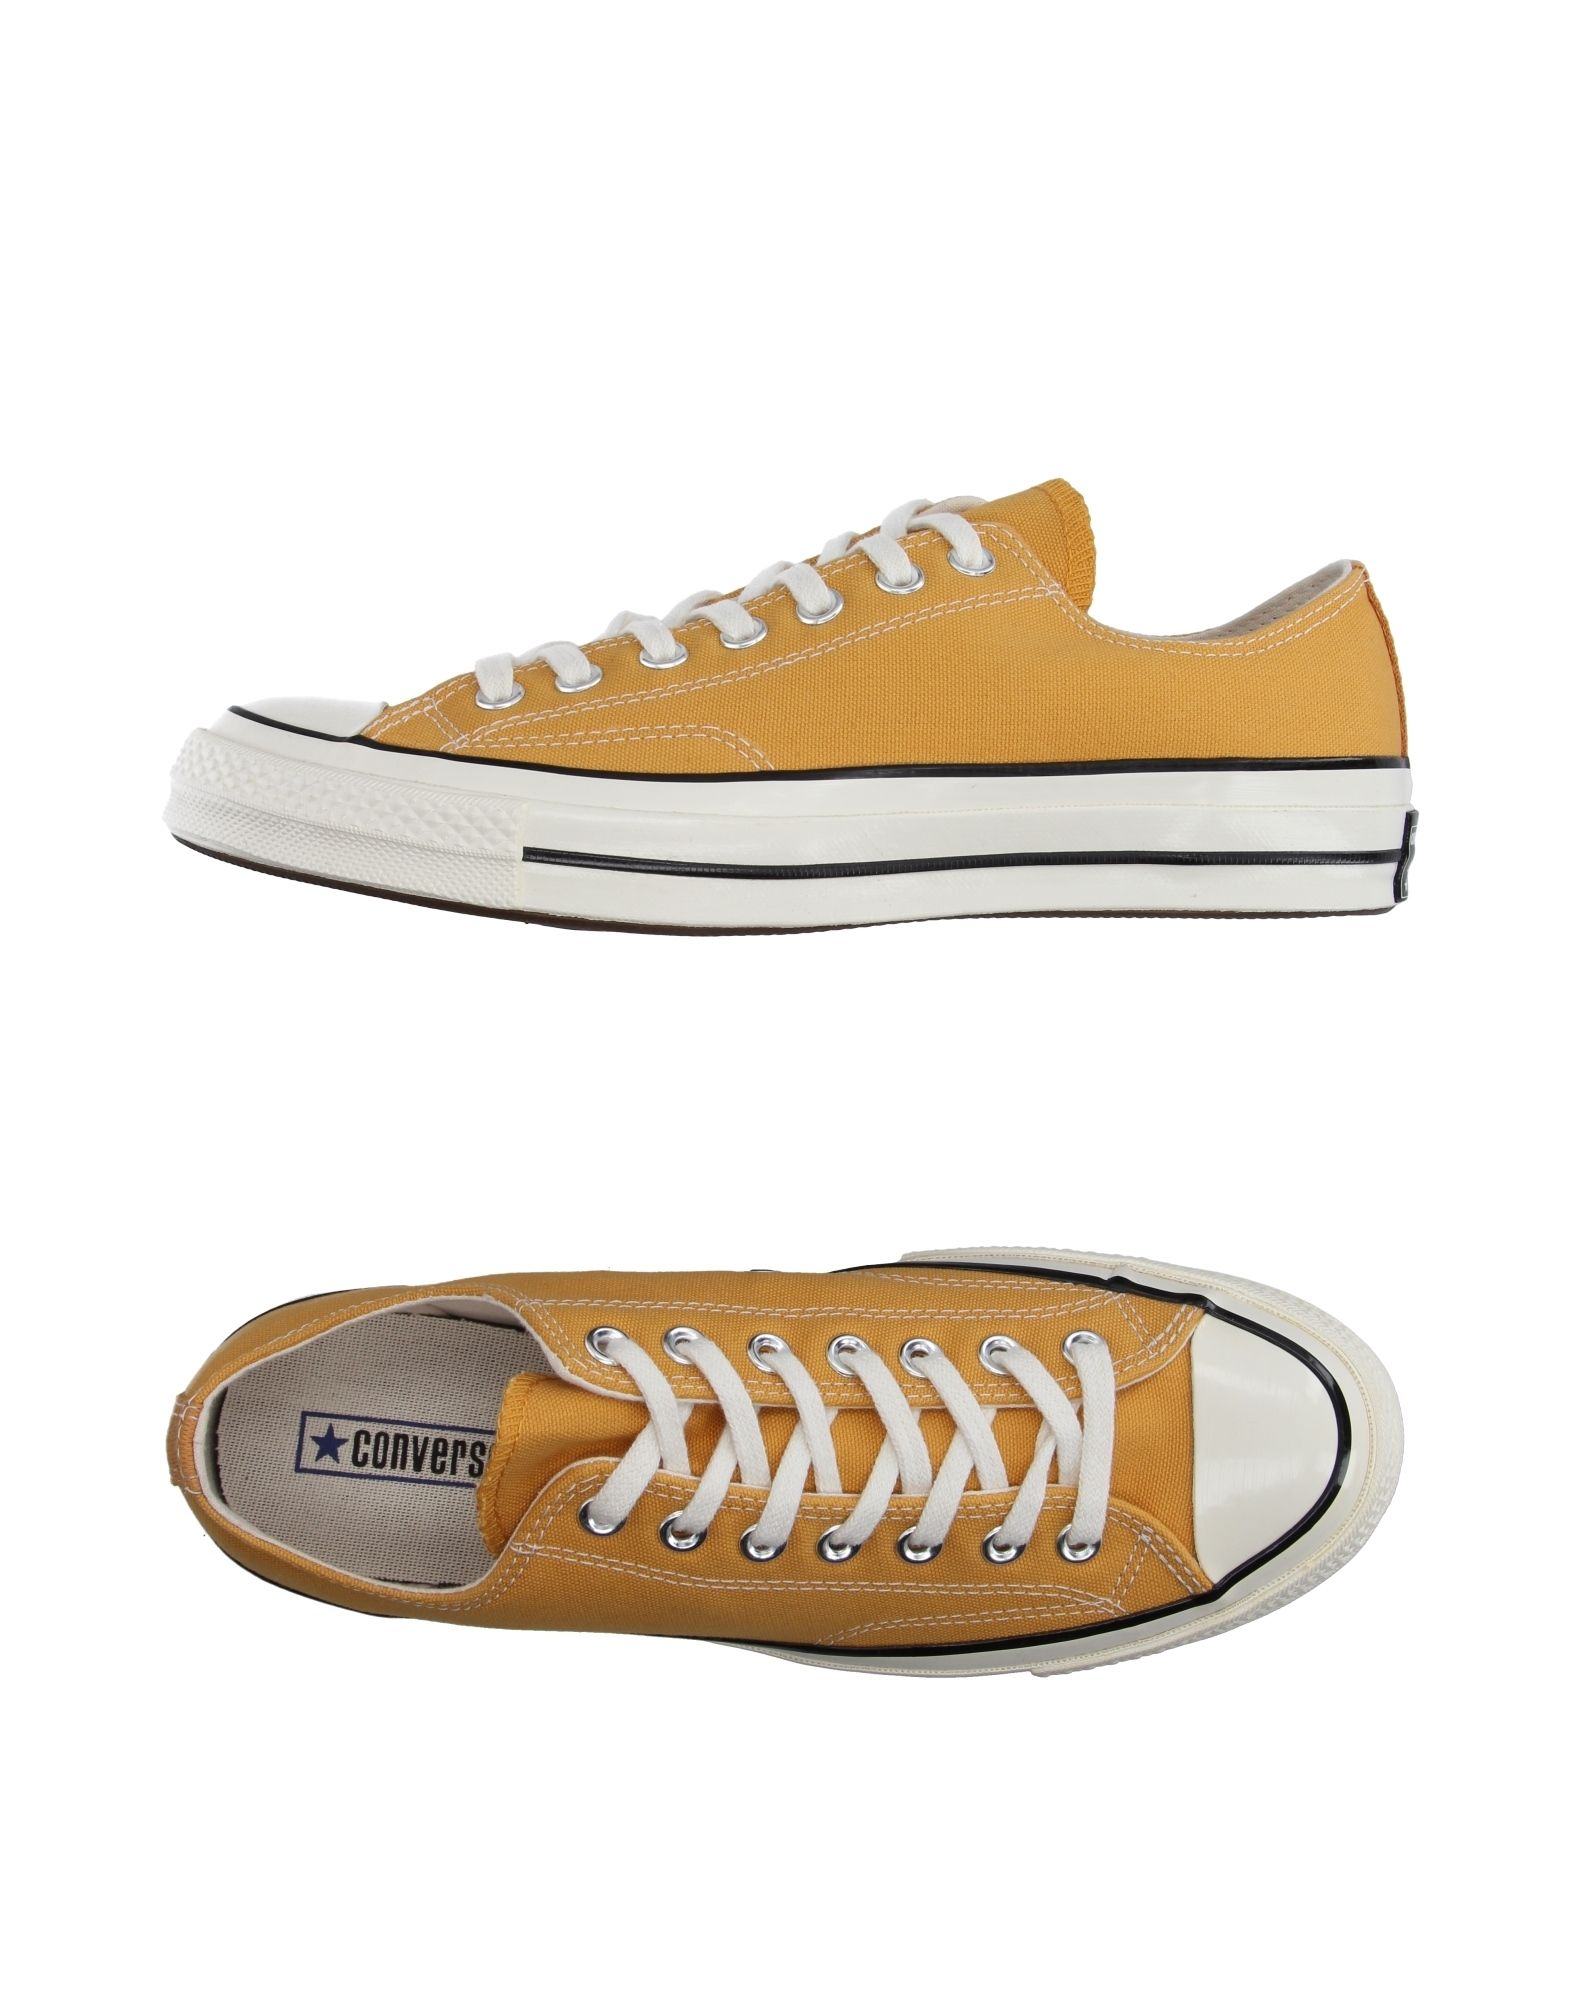 CONVERSE ALL STAR Низкие кеды и кроссовки new converse all star cool and refreshing styles women sneakers light popular summer the thin canvas skateboarding shoes 552911c